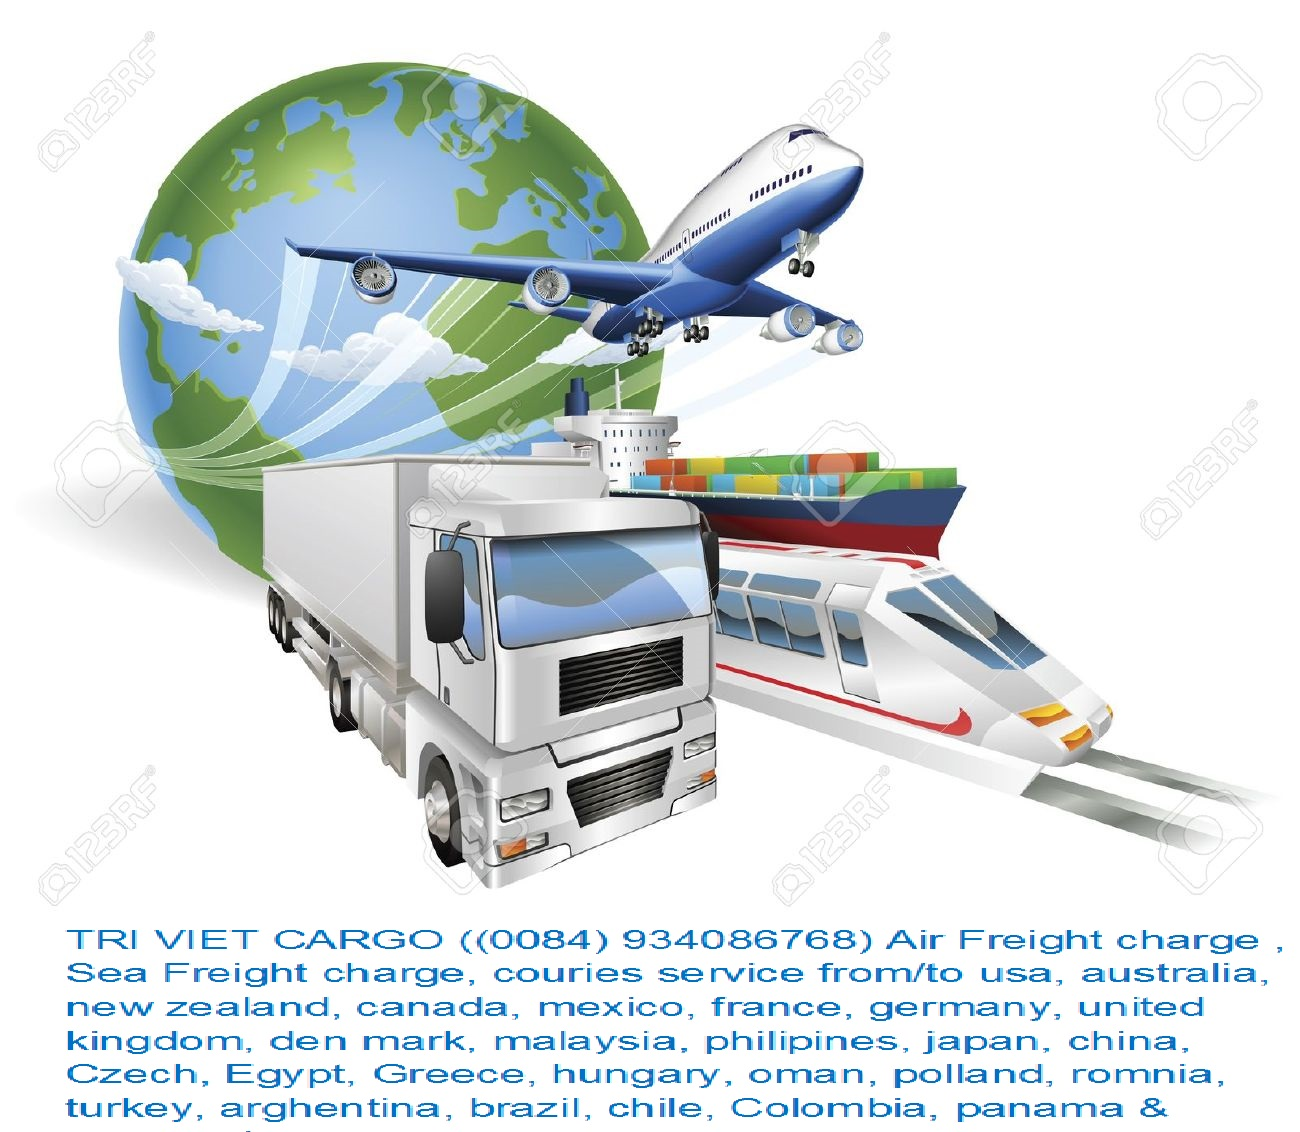 9584534-global-logistics-concept-illustration-globe-airplane-aeroplane-truck-train-and-cargo-container-ship-stock-vector